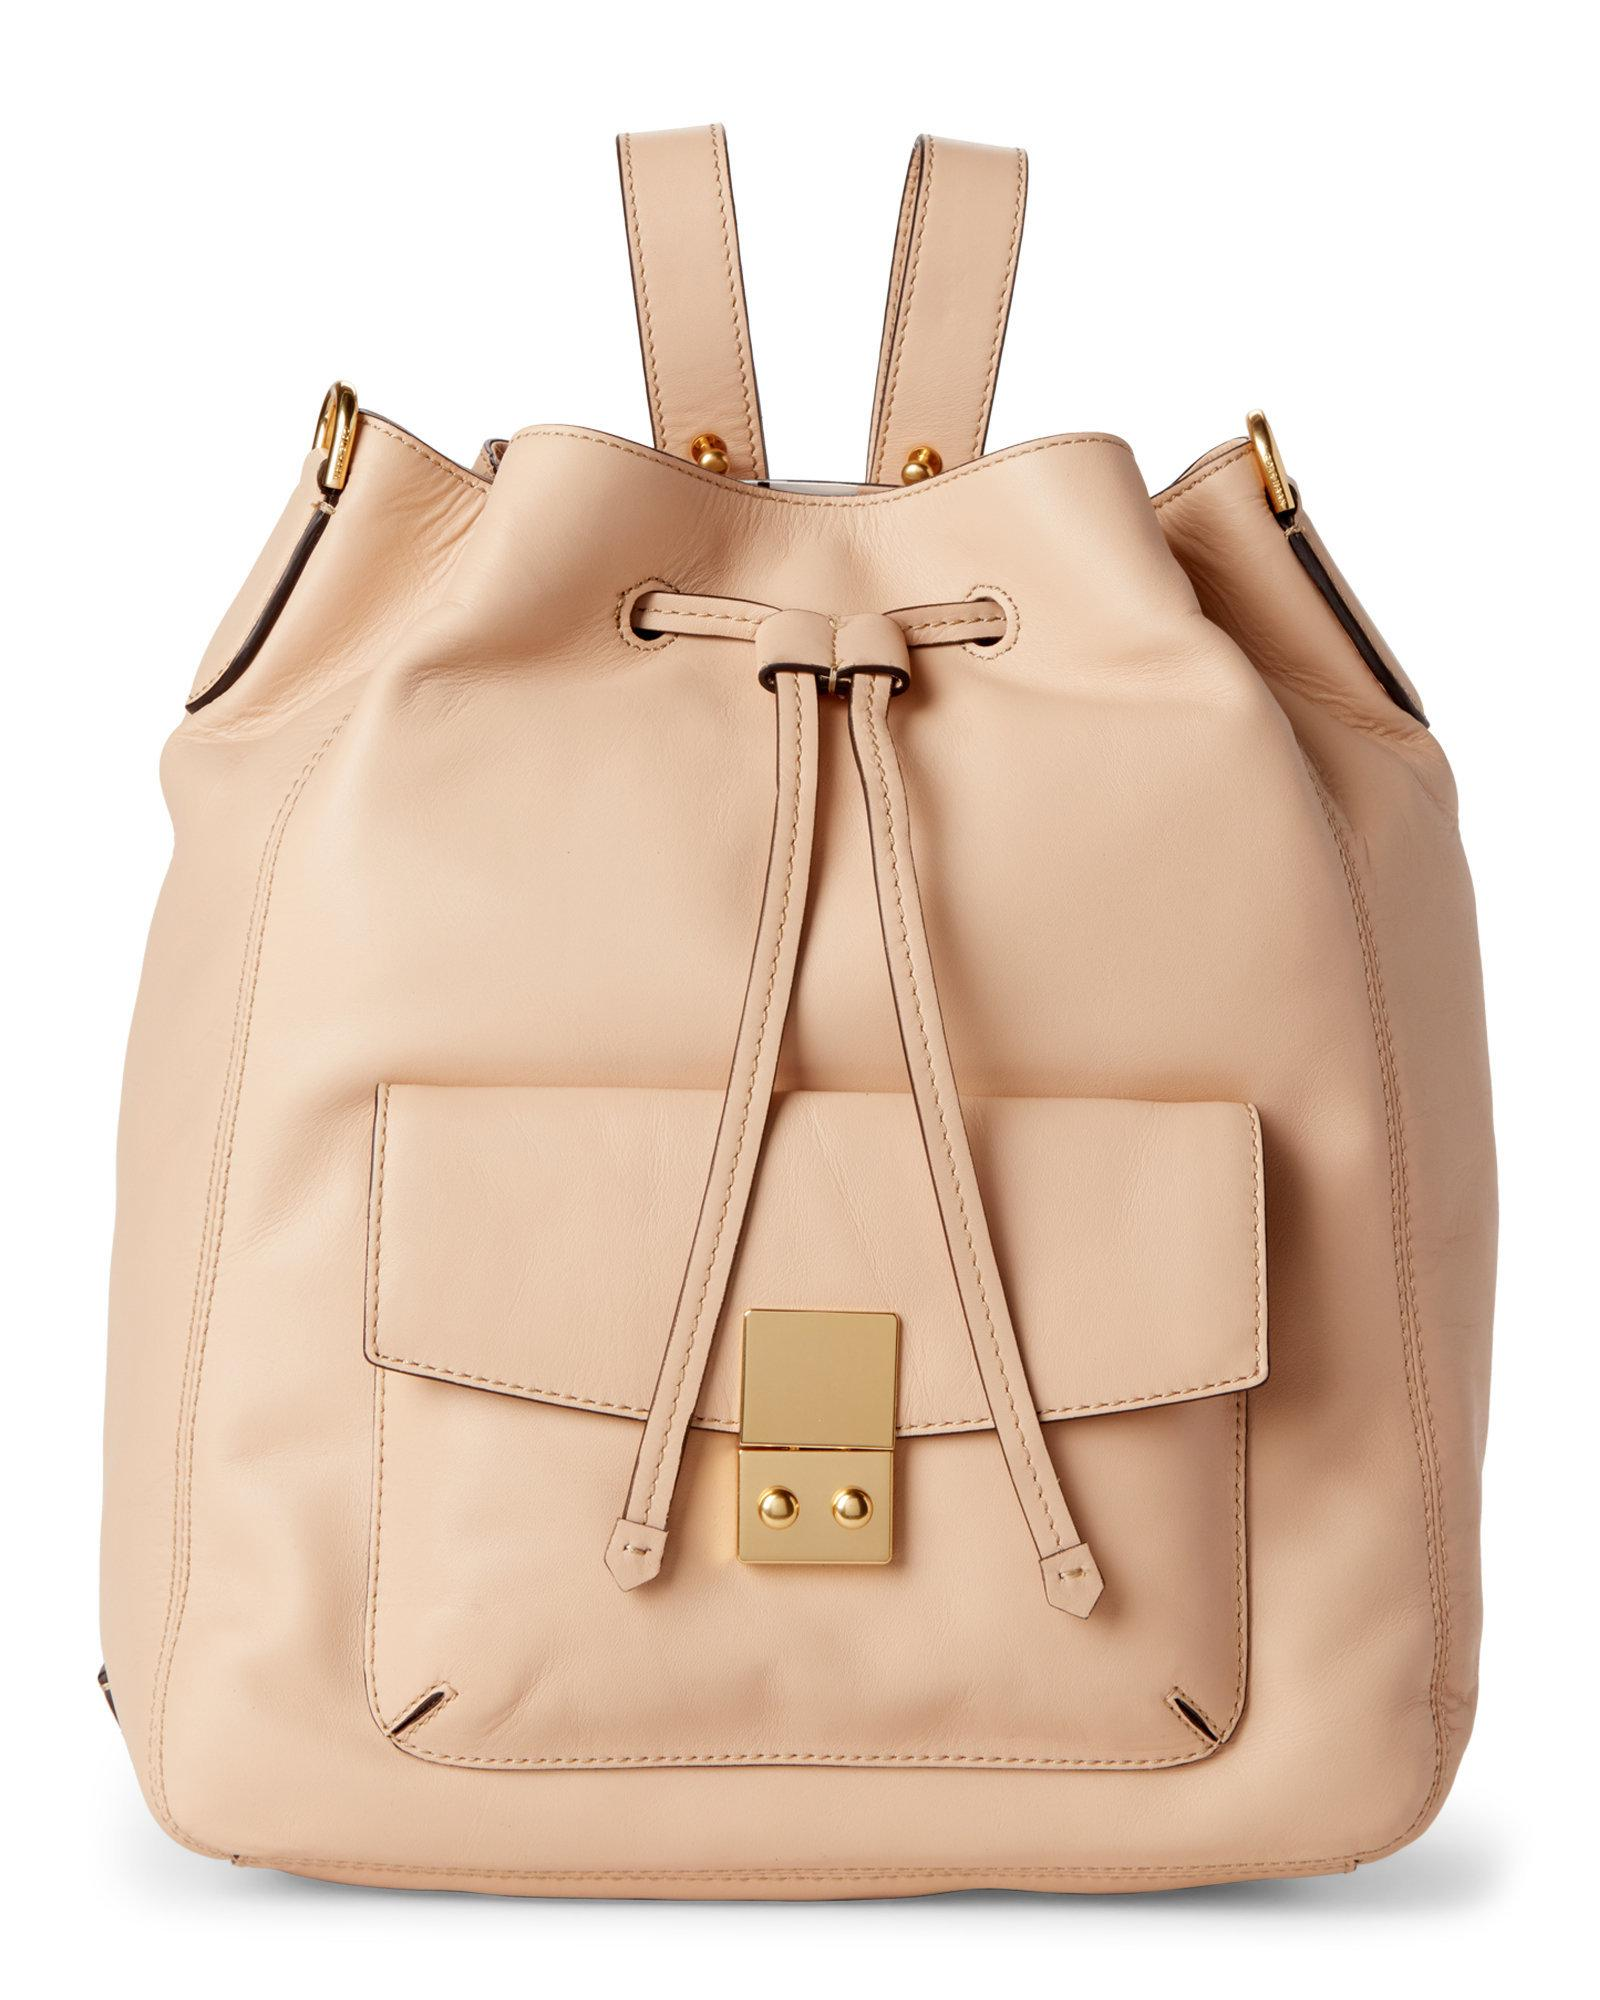 4ed6b301721f Lyst - Cole Haan Nude Alanna Convertible Leather Backpack in Natural